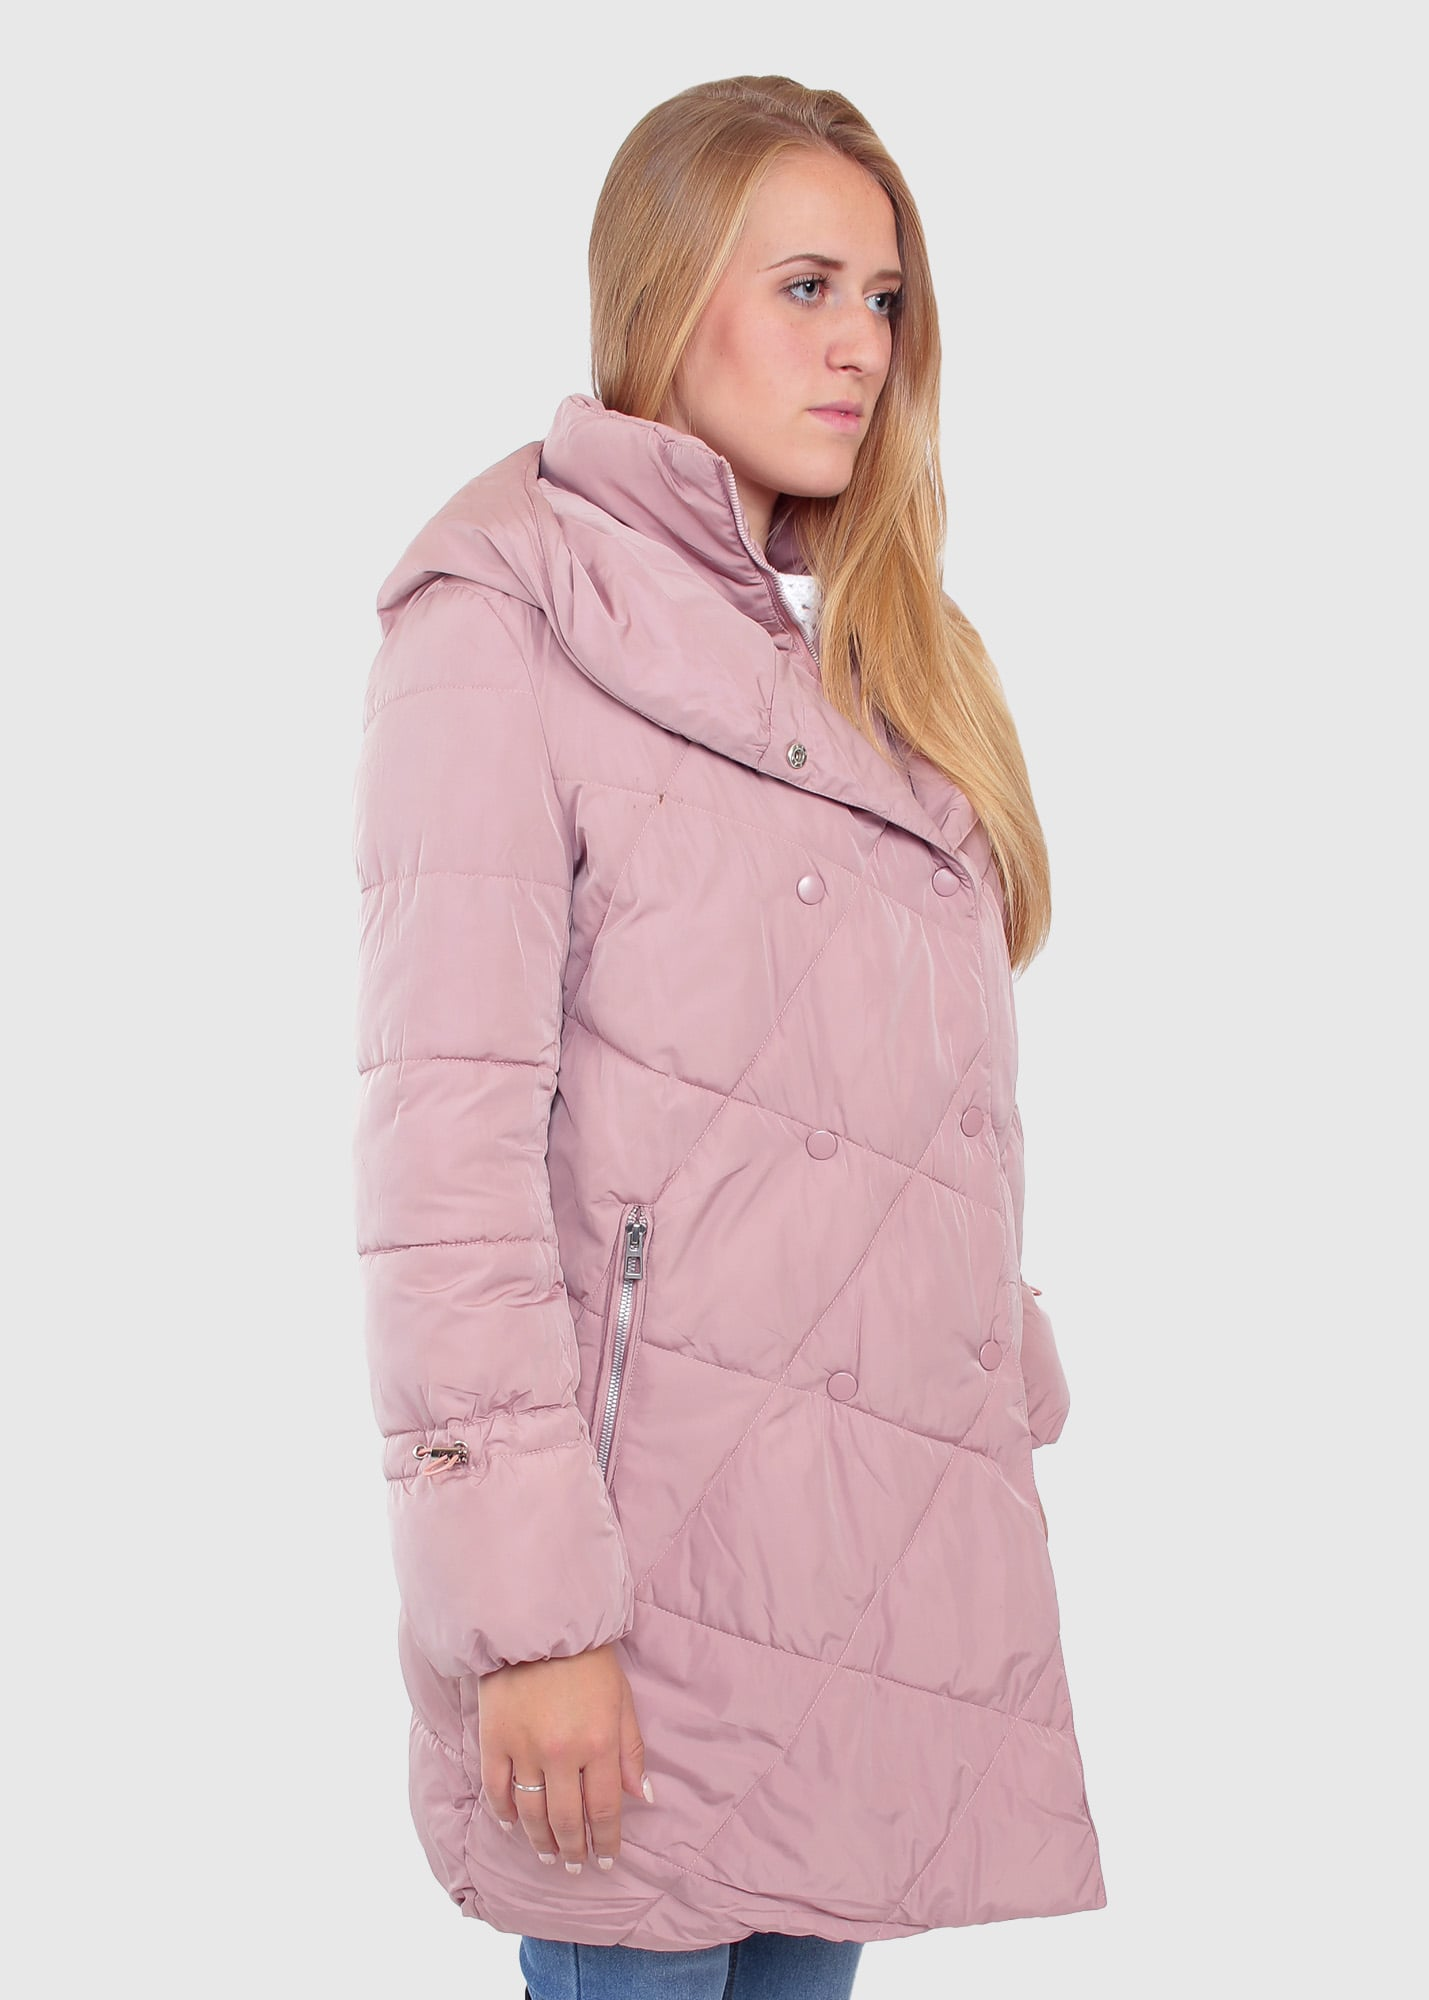 Photo №2 Elma pink women's jacket